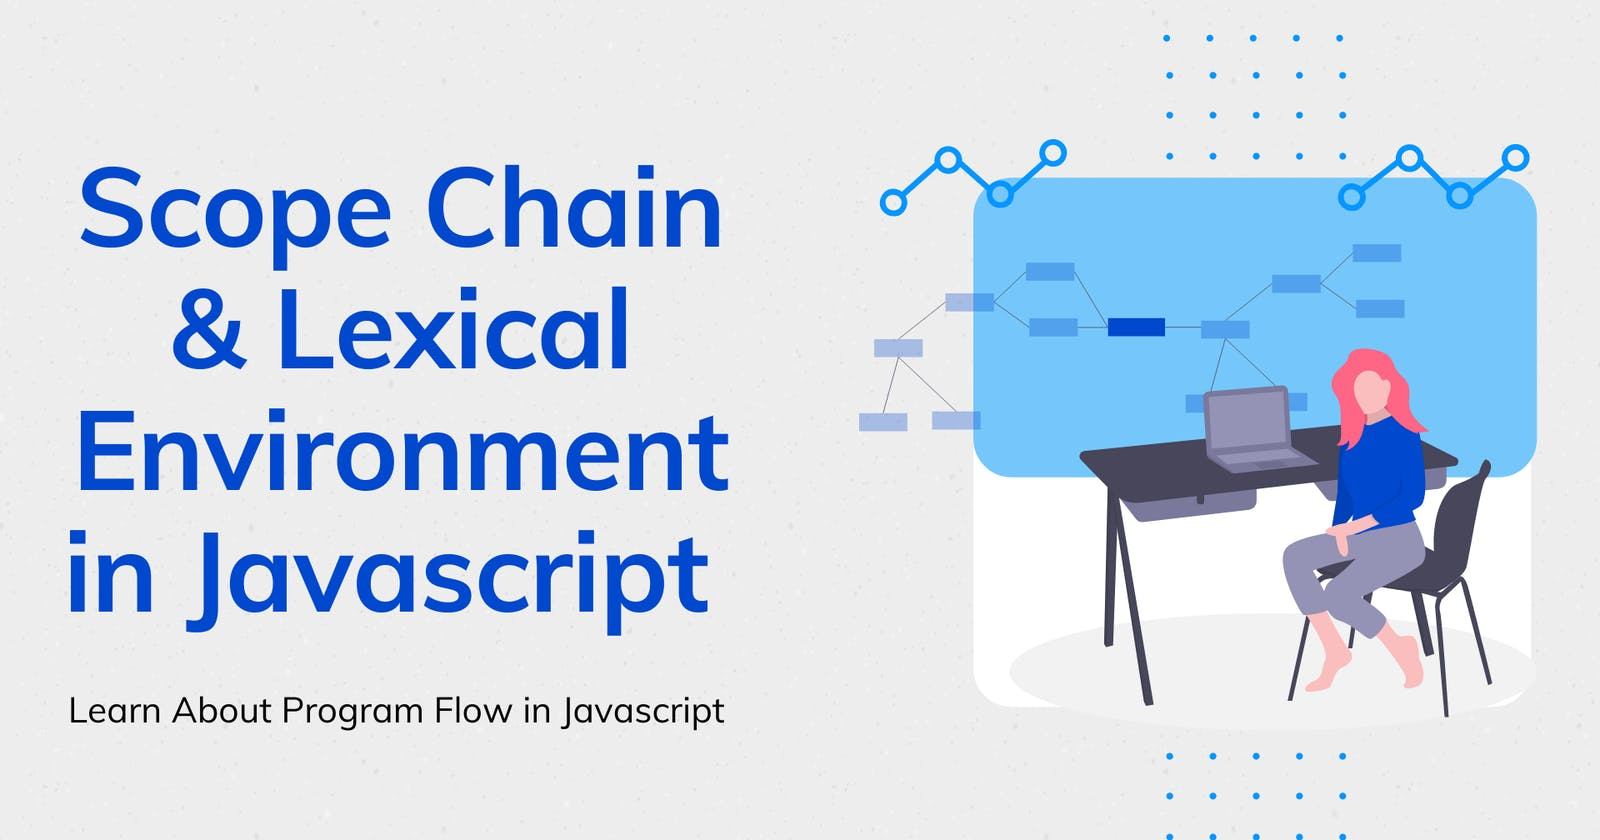 Scope Chain & Lexical Environment in Javascript